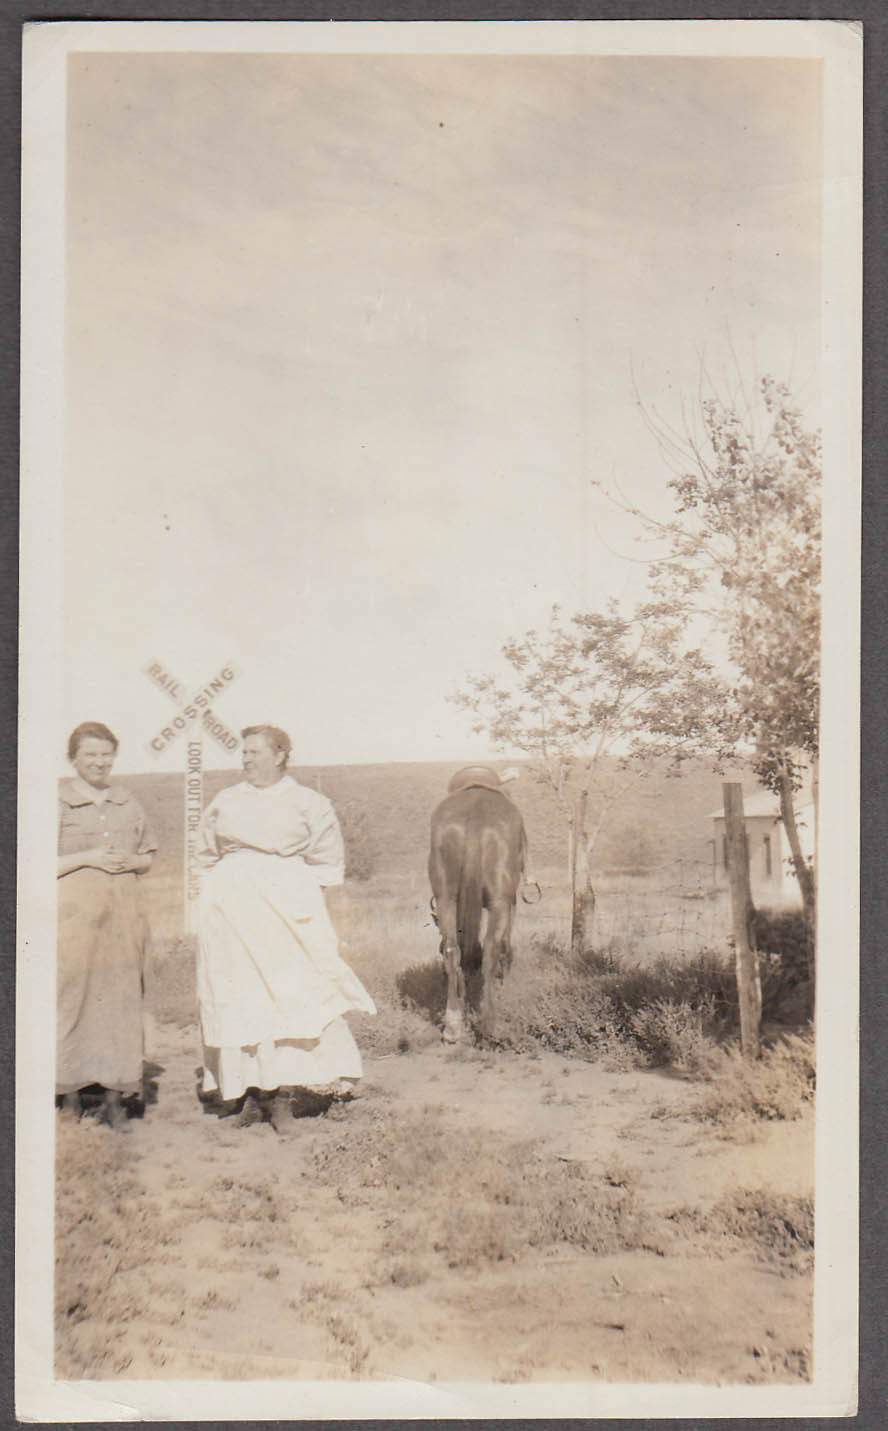 Stout Aunt Mary & mother rural RR Crossing & horse's tail vernacular snapshot